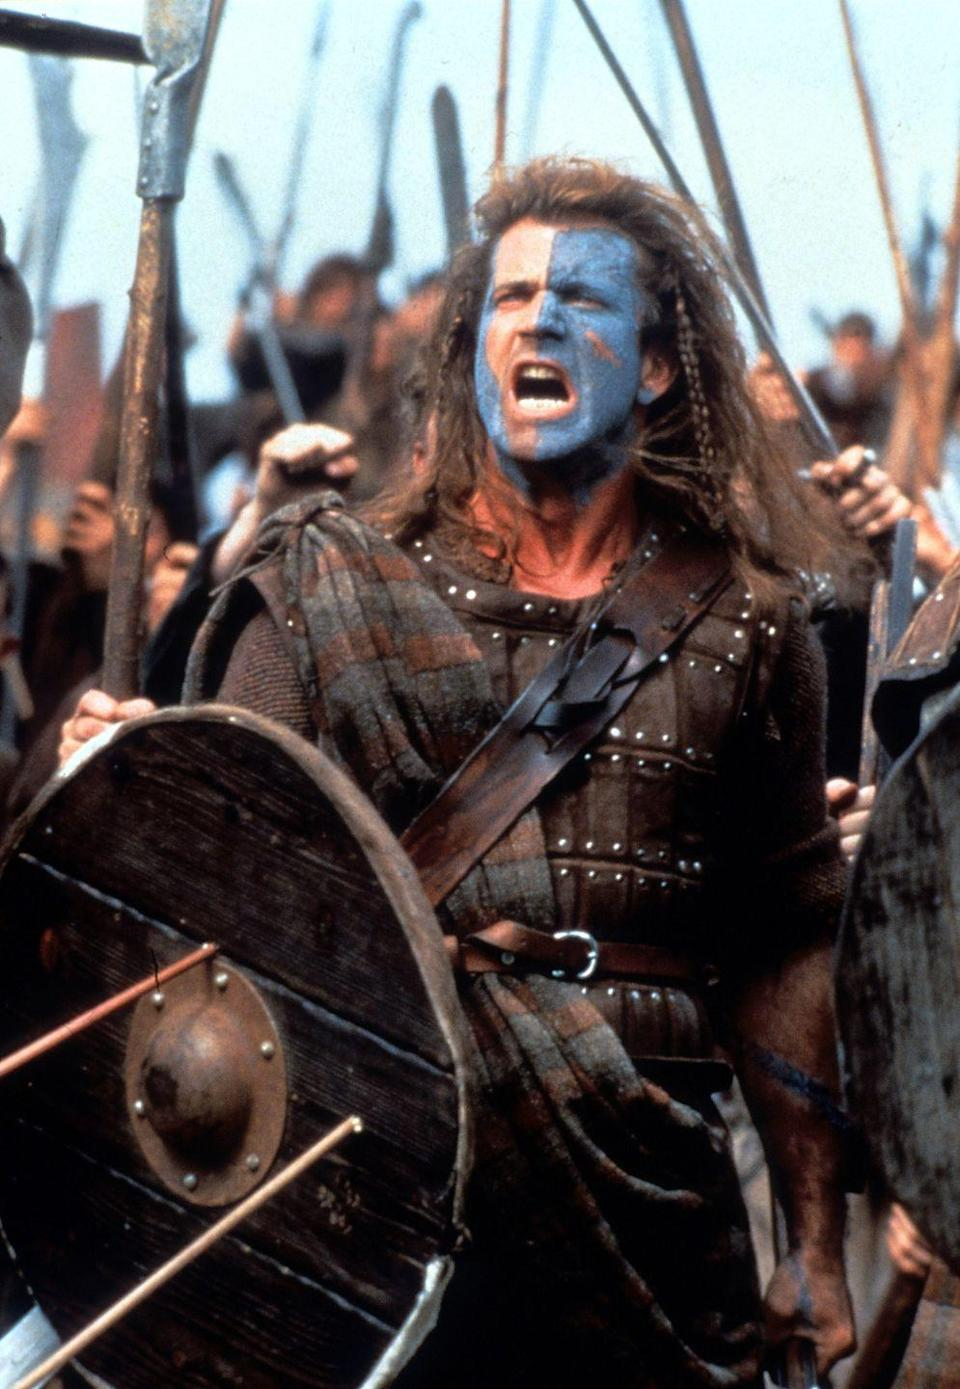 <p>Not many people missed Mel Gibson's <em>Braveheart </em>in 1995, a period piece that followed the war story of Scotland's William Wallace as he stands up to King Edward I in the First War of Scottish Independence. The film won five Academy Awards, including Best Director for Gibson's directorial debut. </p>